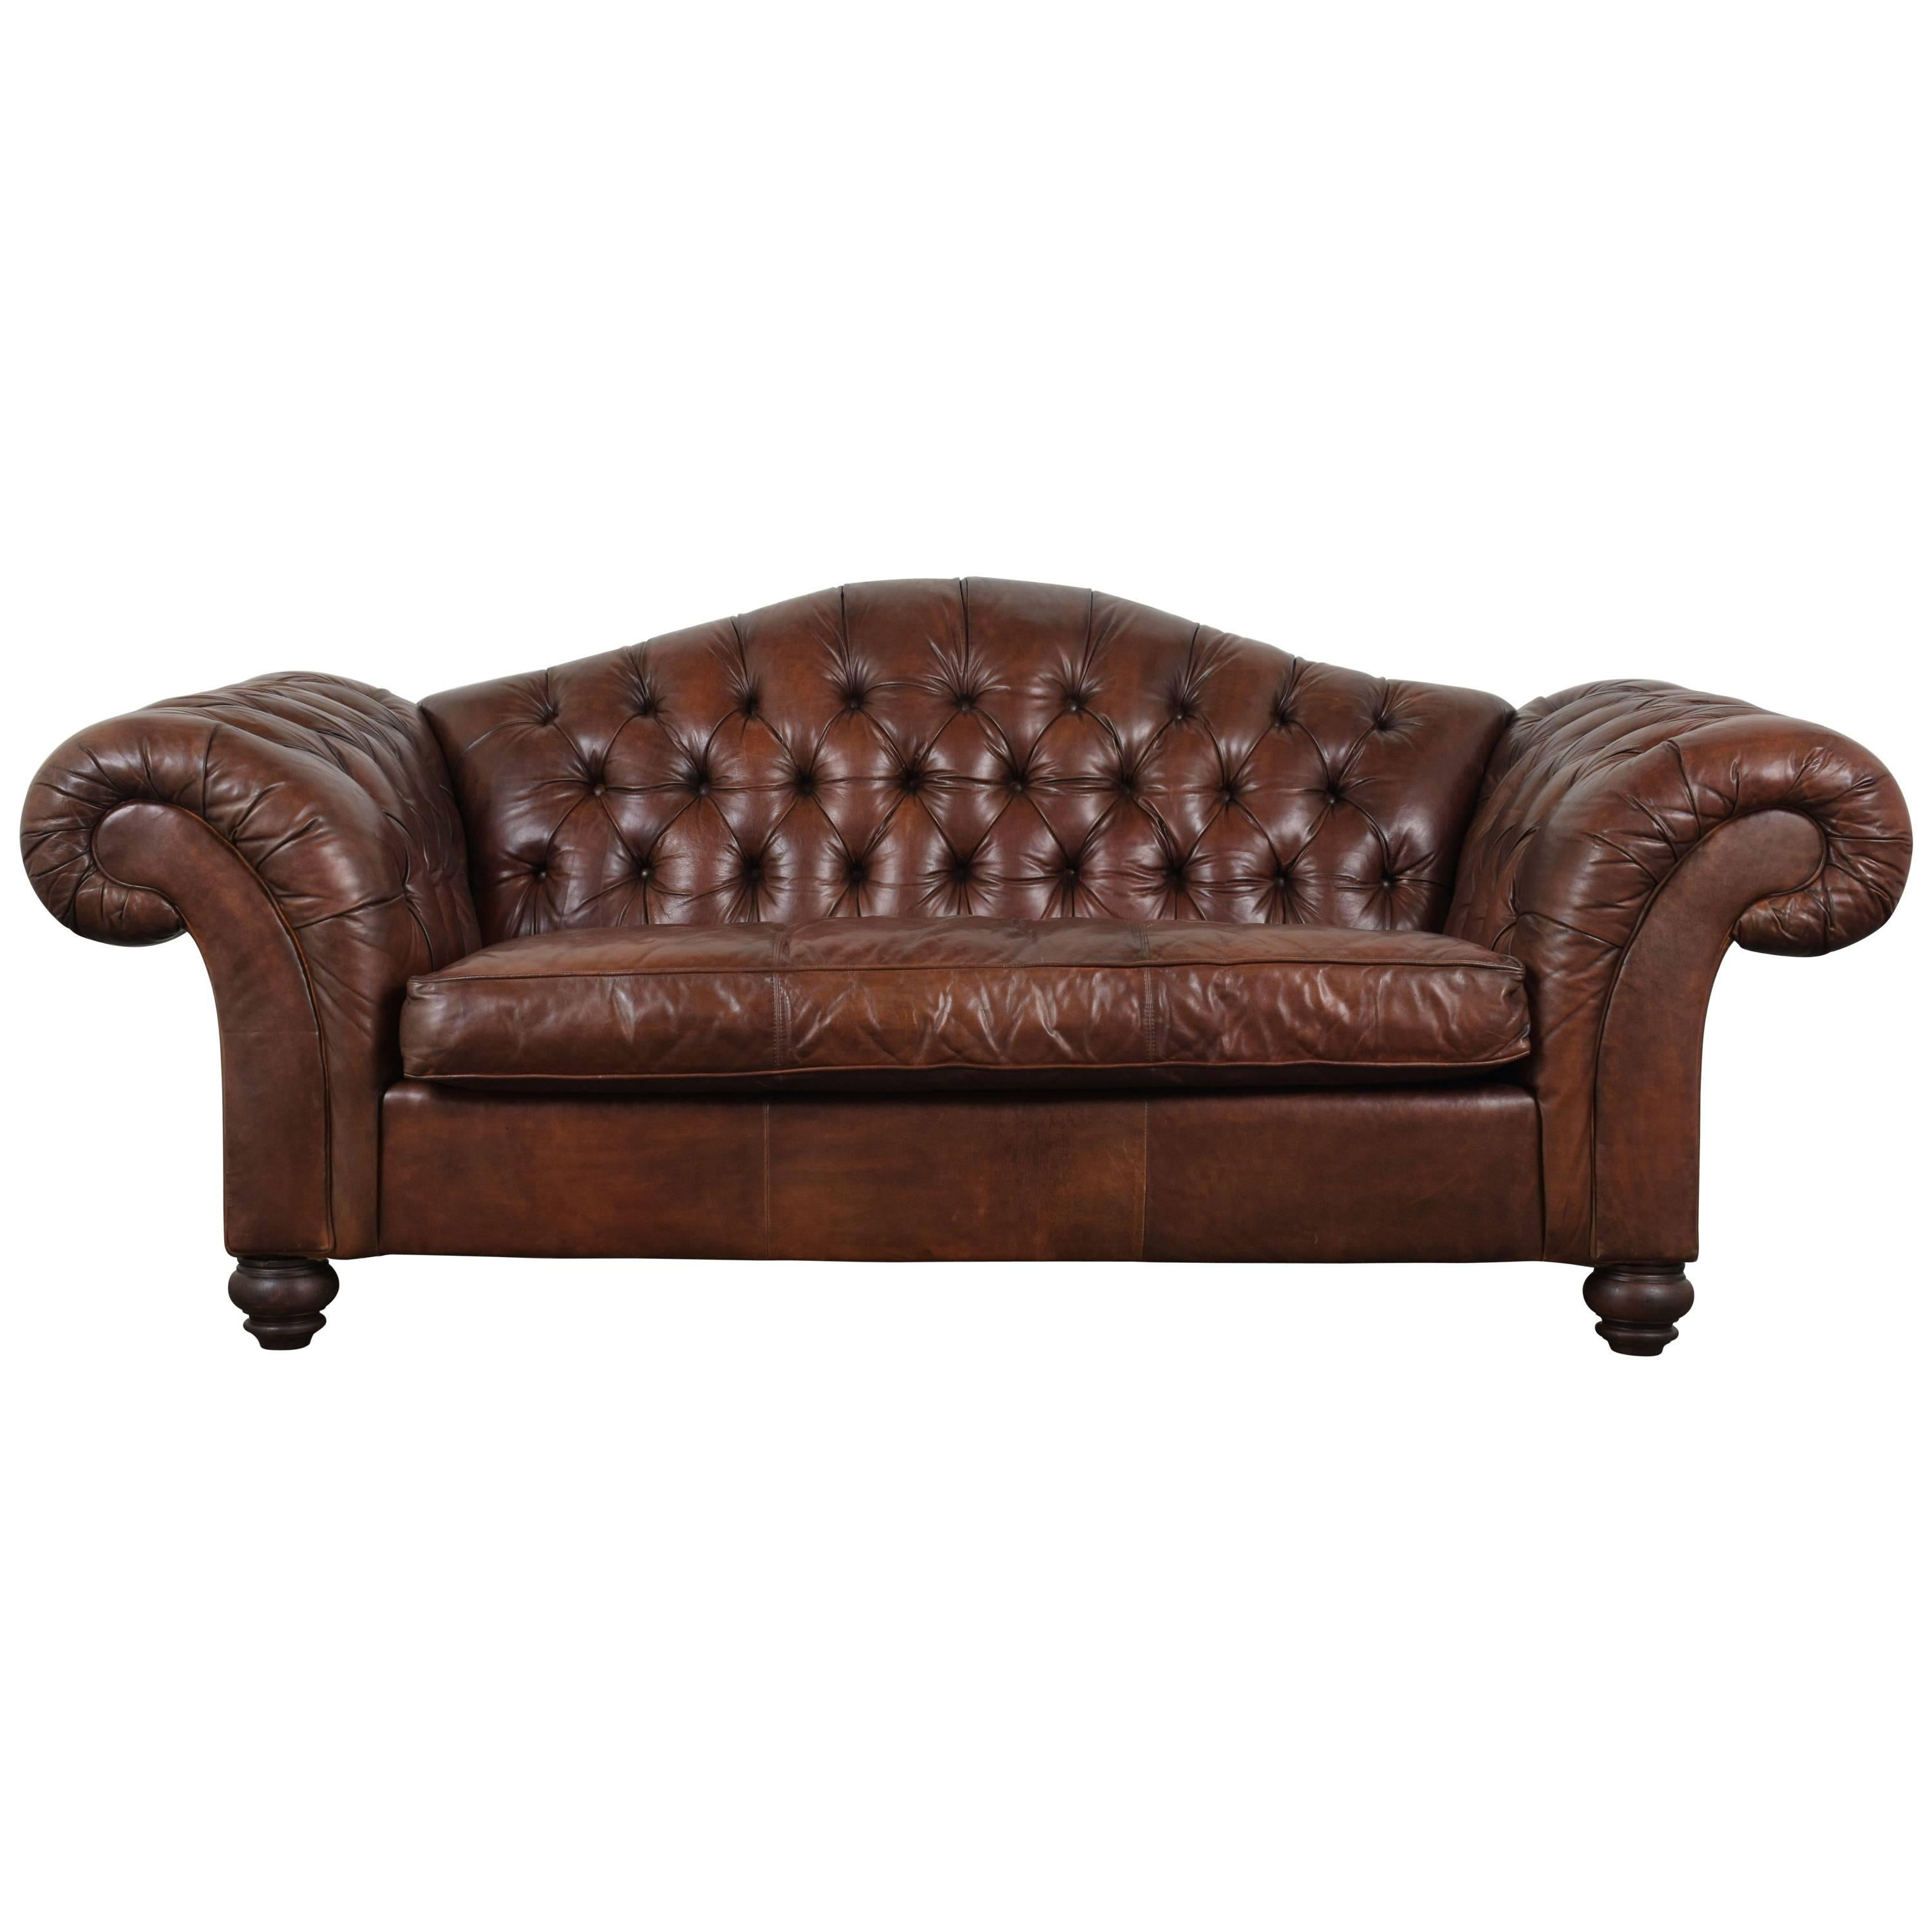 Charmant Hickory Chesterfield Tufted Leather Sofa